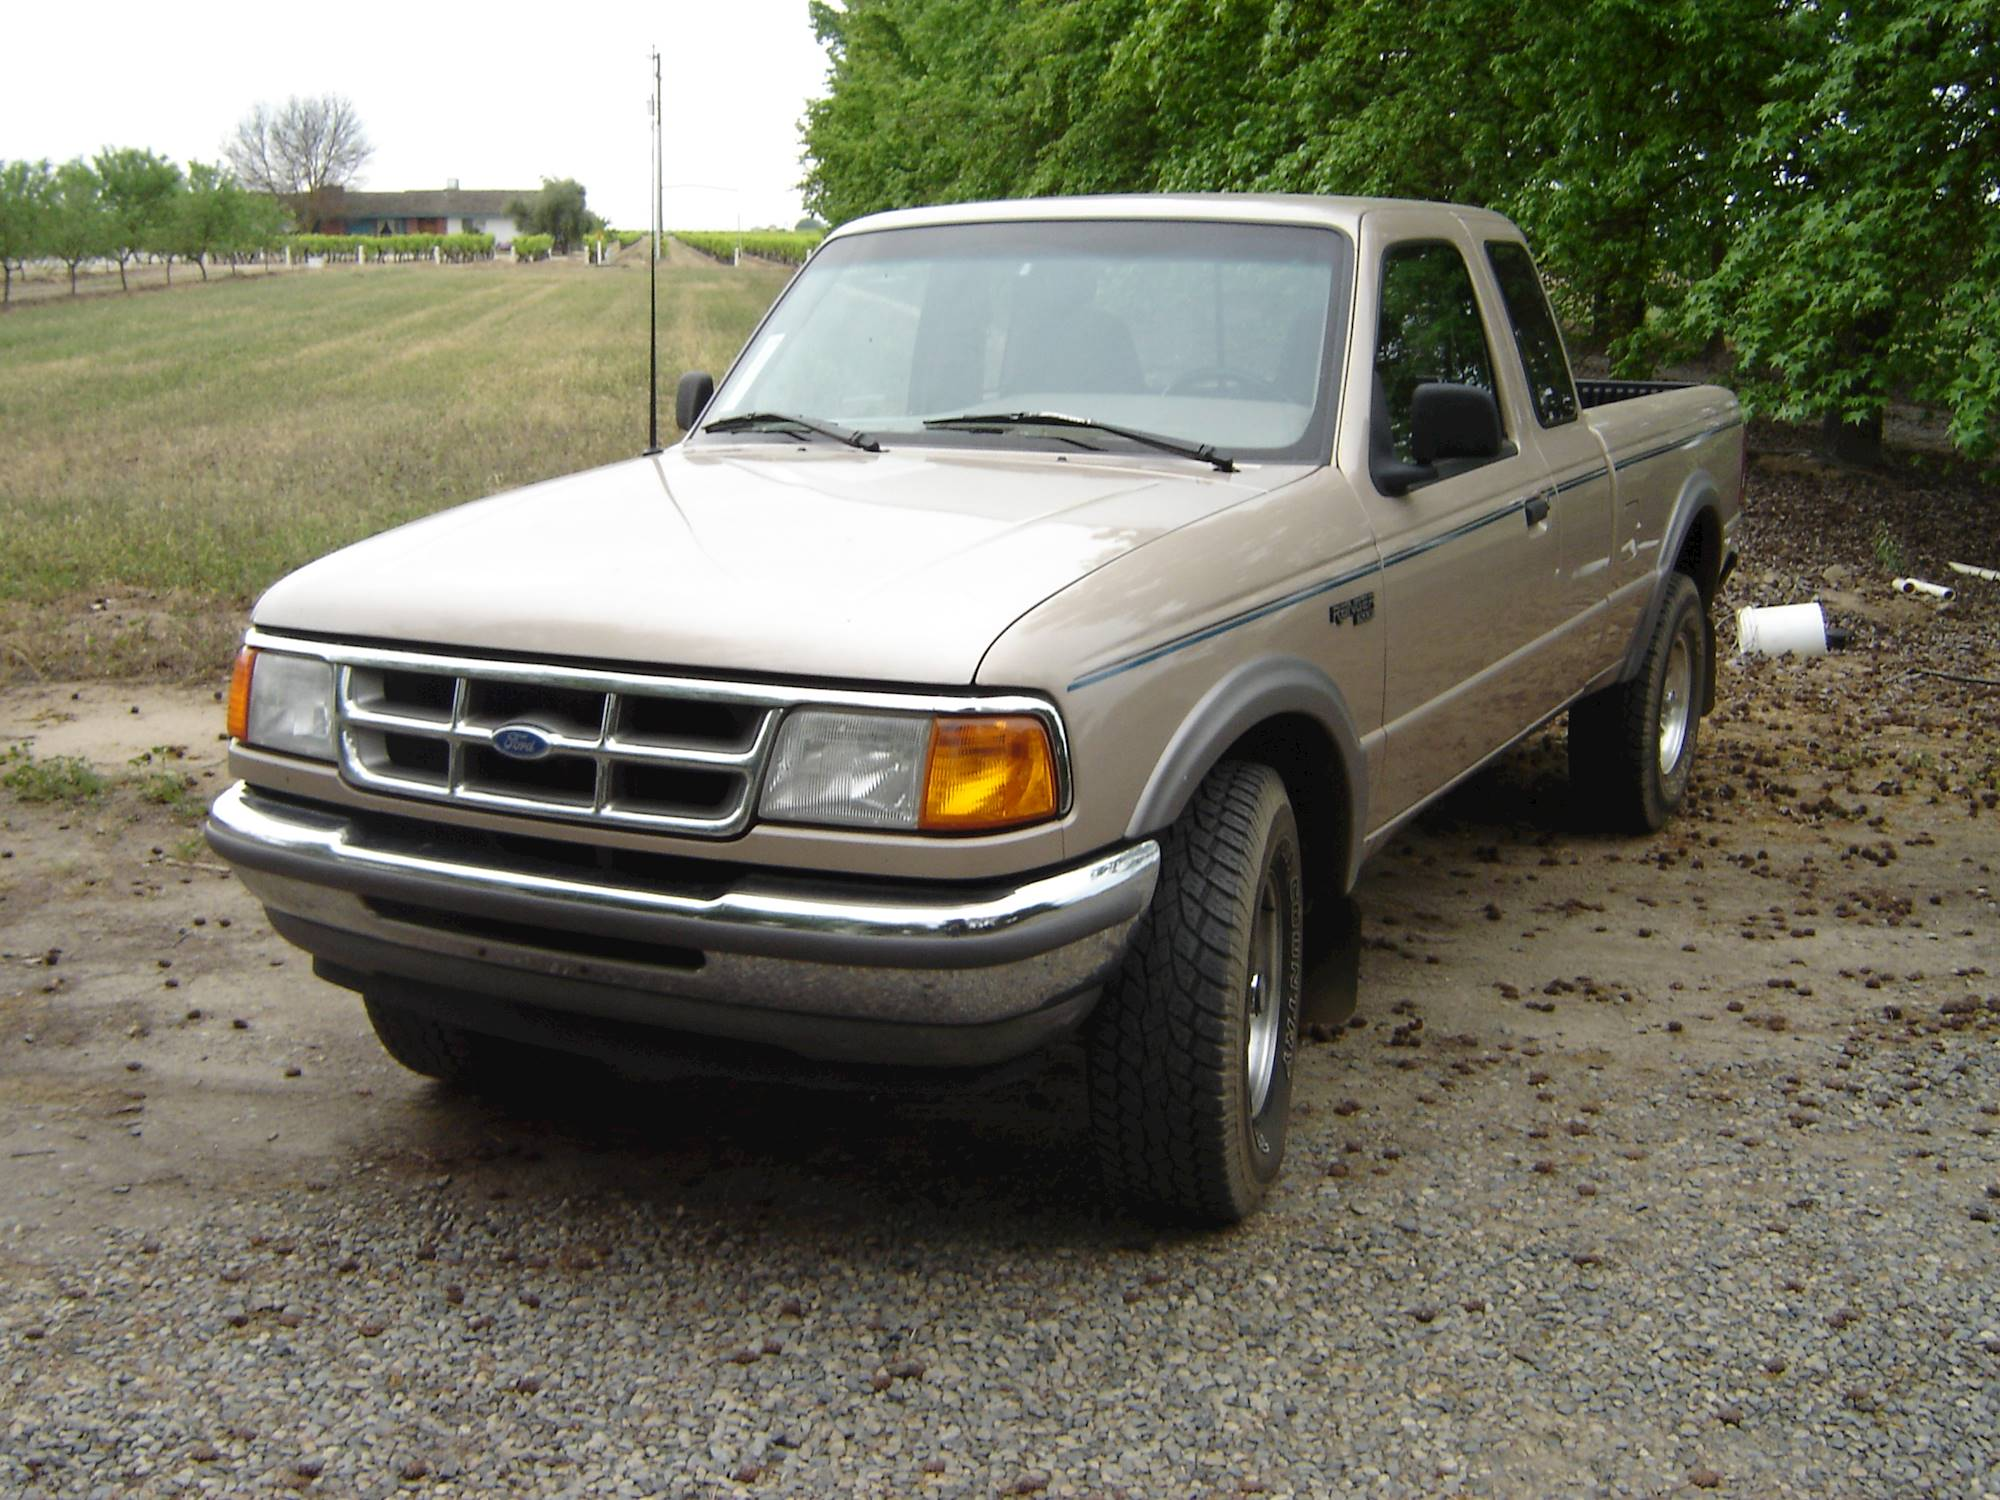 1999 Ford Ranger XLT 4x2 Super Cab 5.75 ft. box 125.7 in. WB 5-spd manual  w/OD